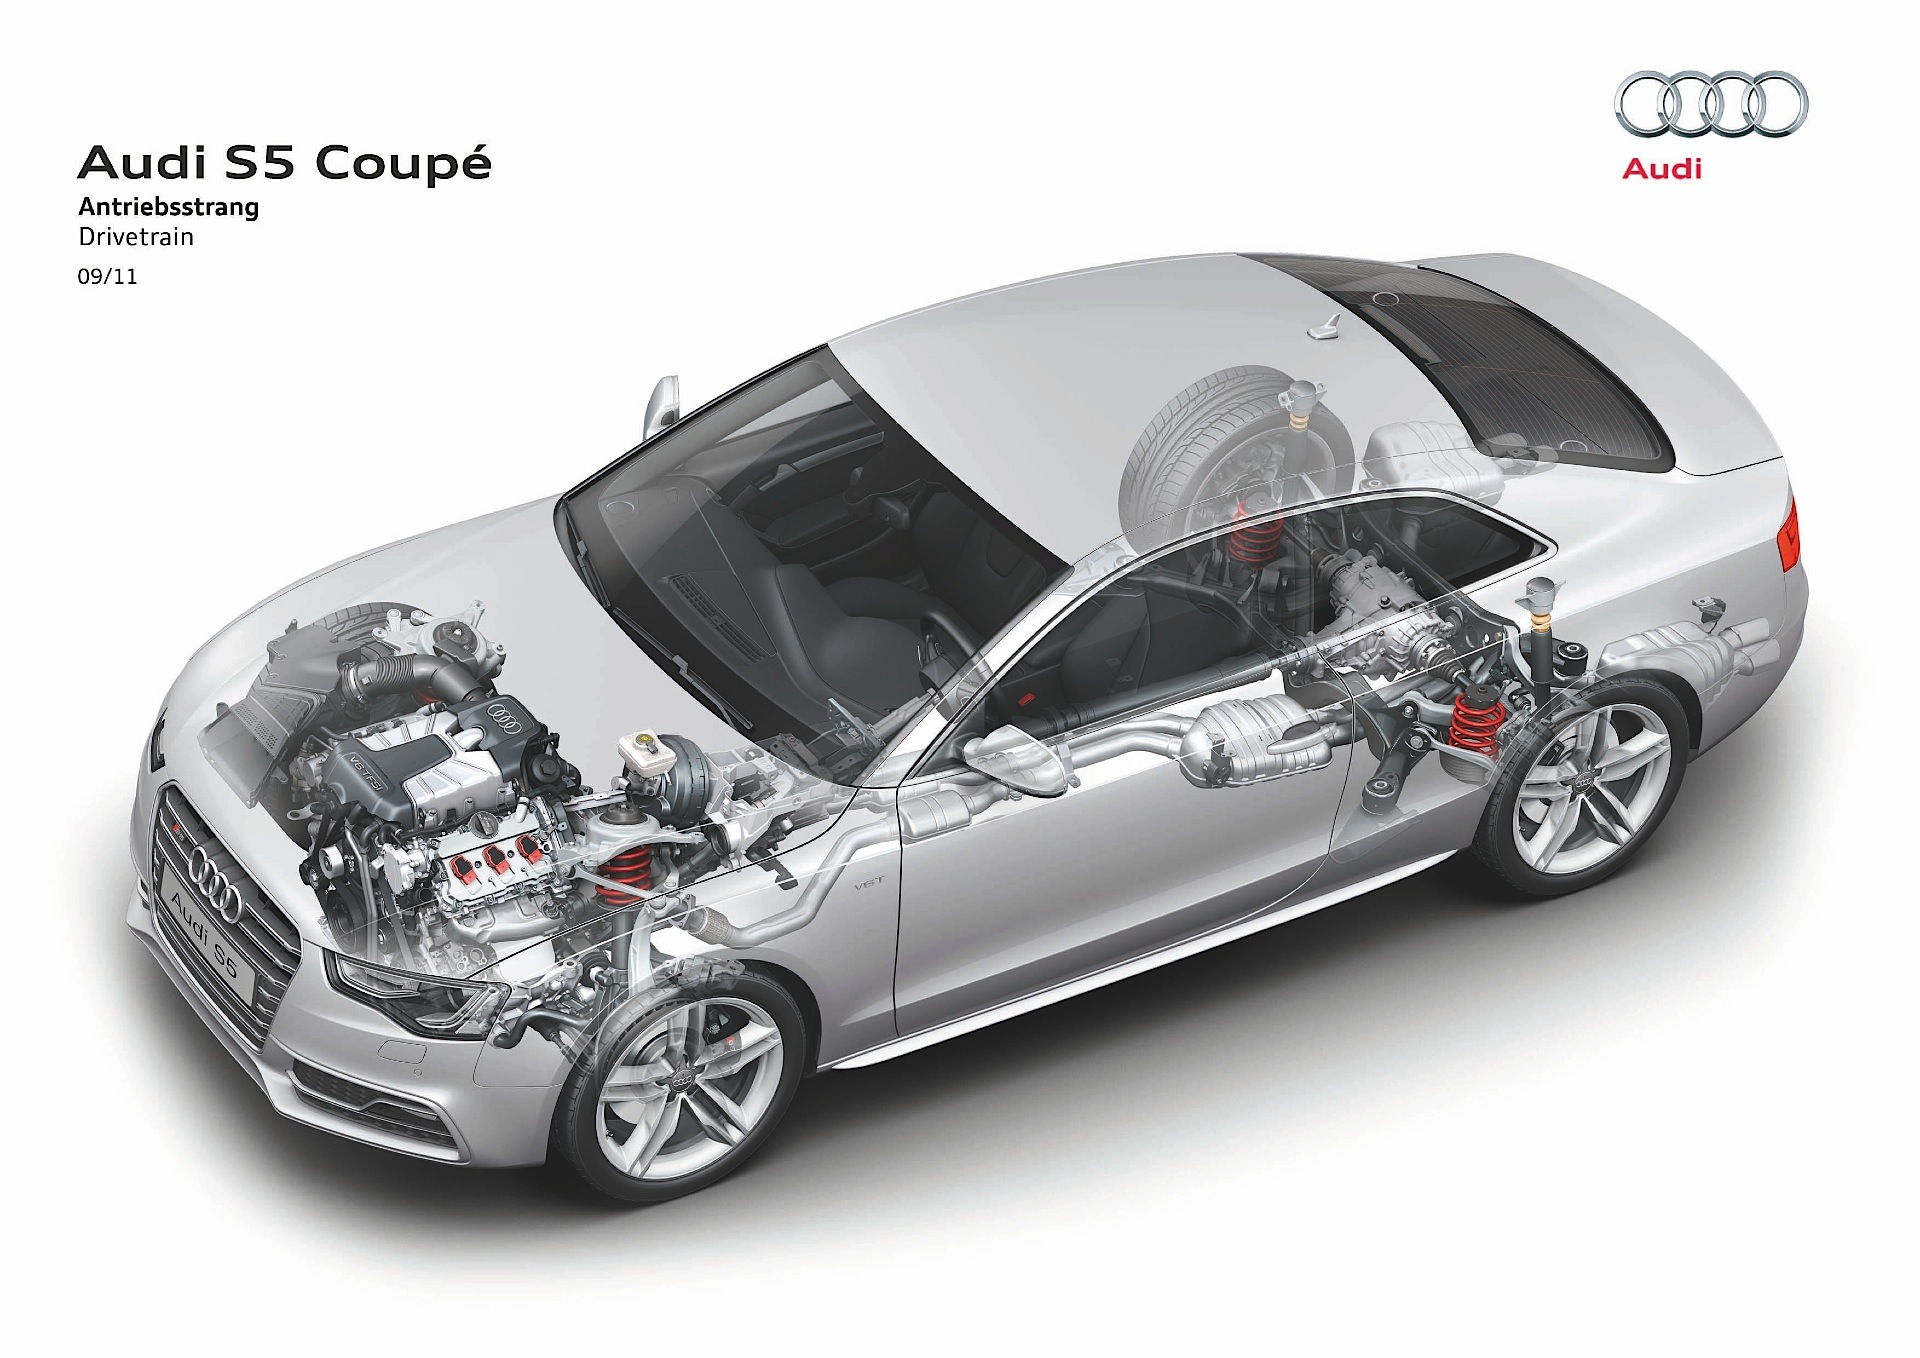 Audi S5 Engine Diagram Reveolution Of Wiring V8 Coupe Specs Photos 2012 2013 2014 2015 2016 Rh Autoevolution Com 2008 Q5